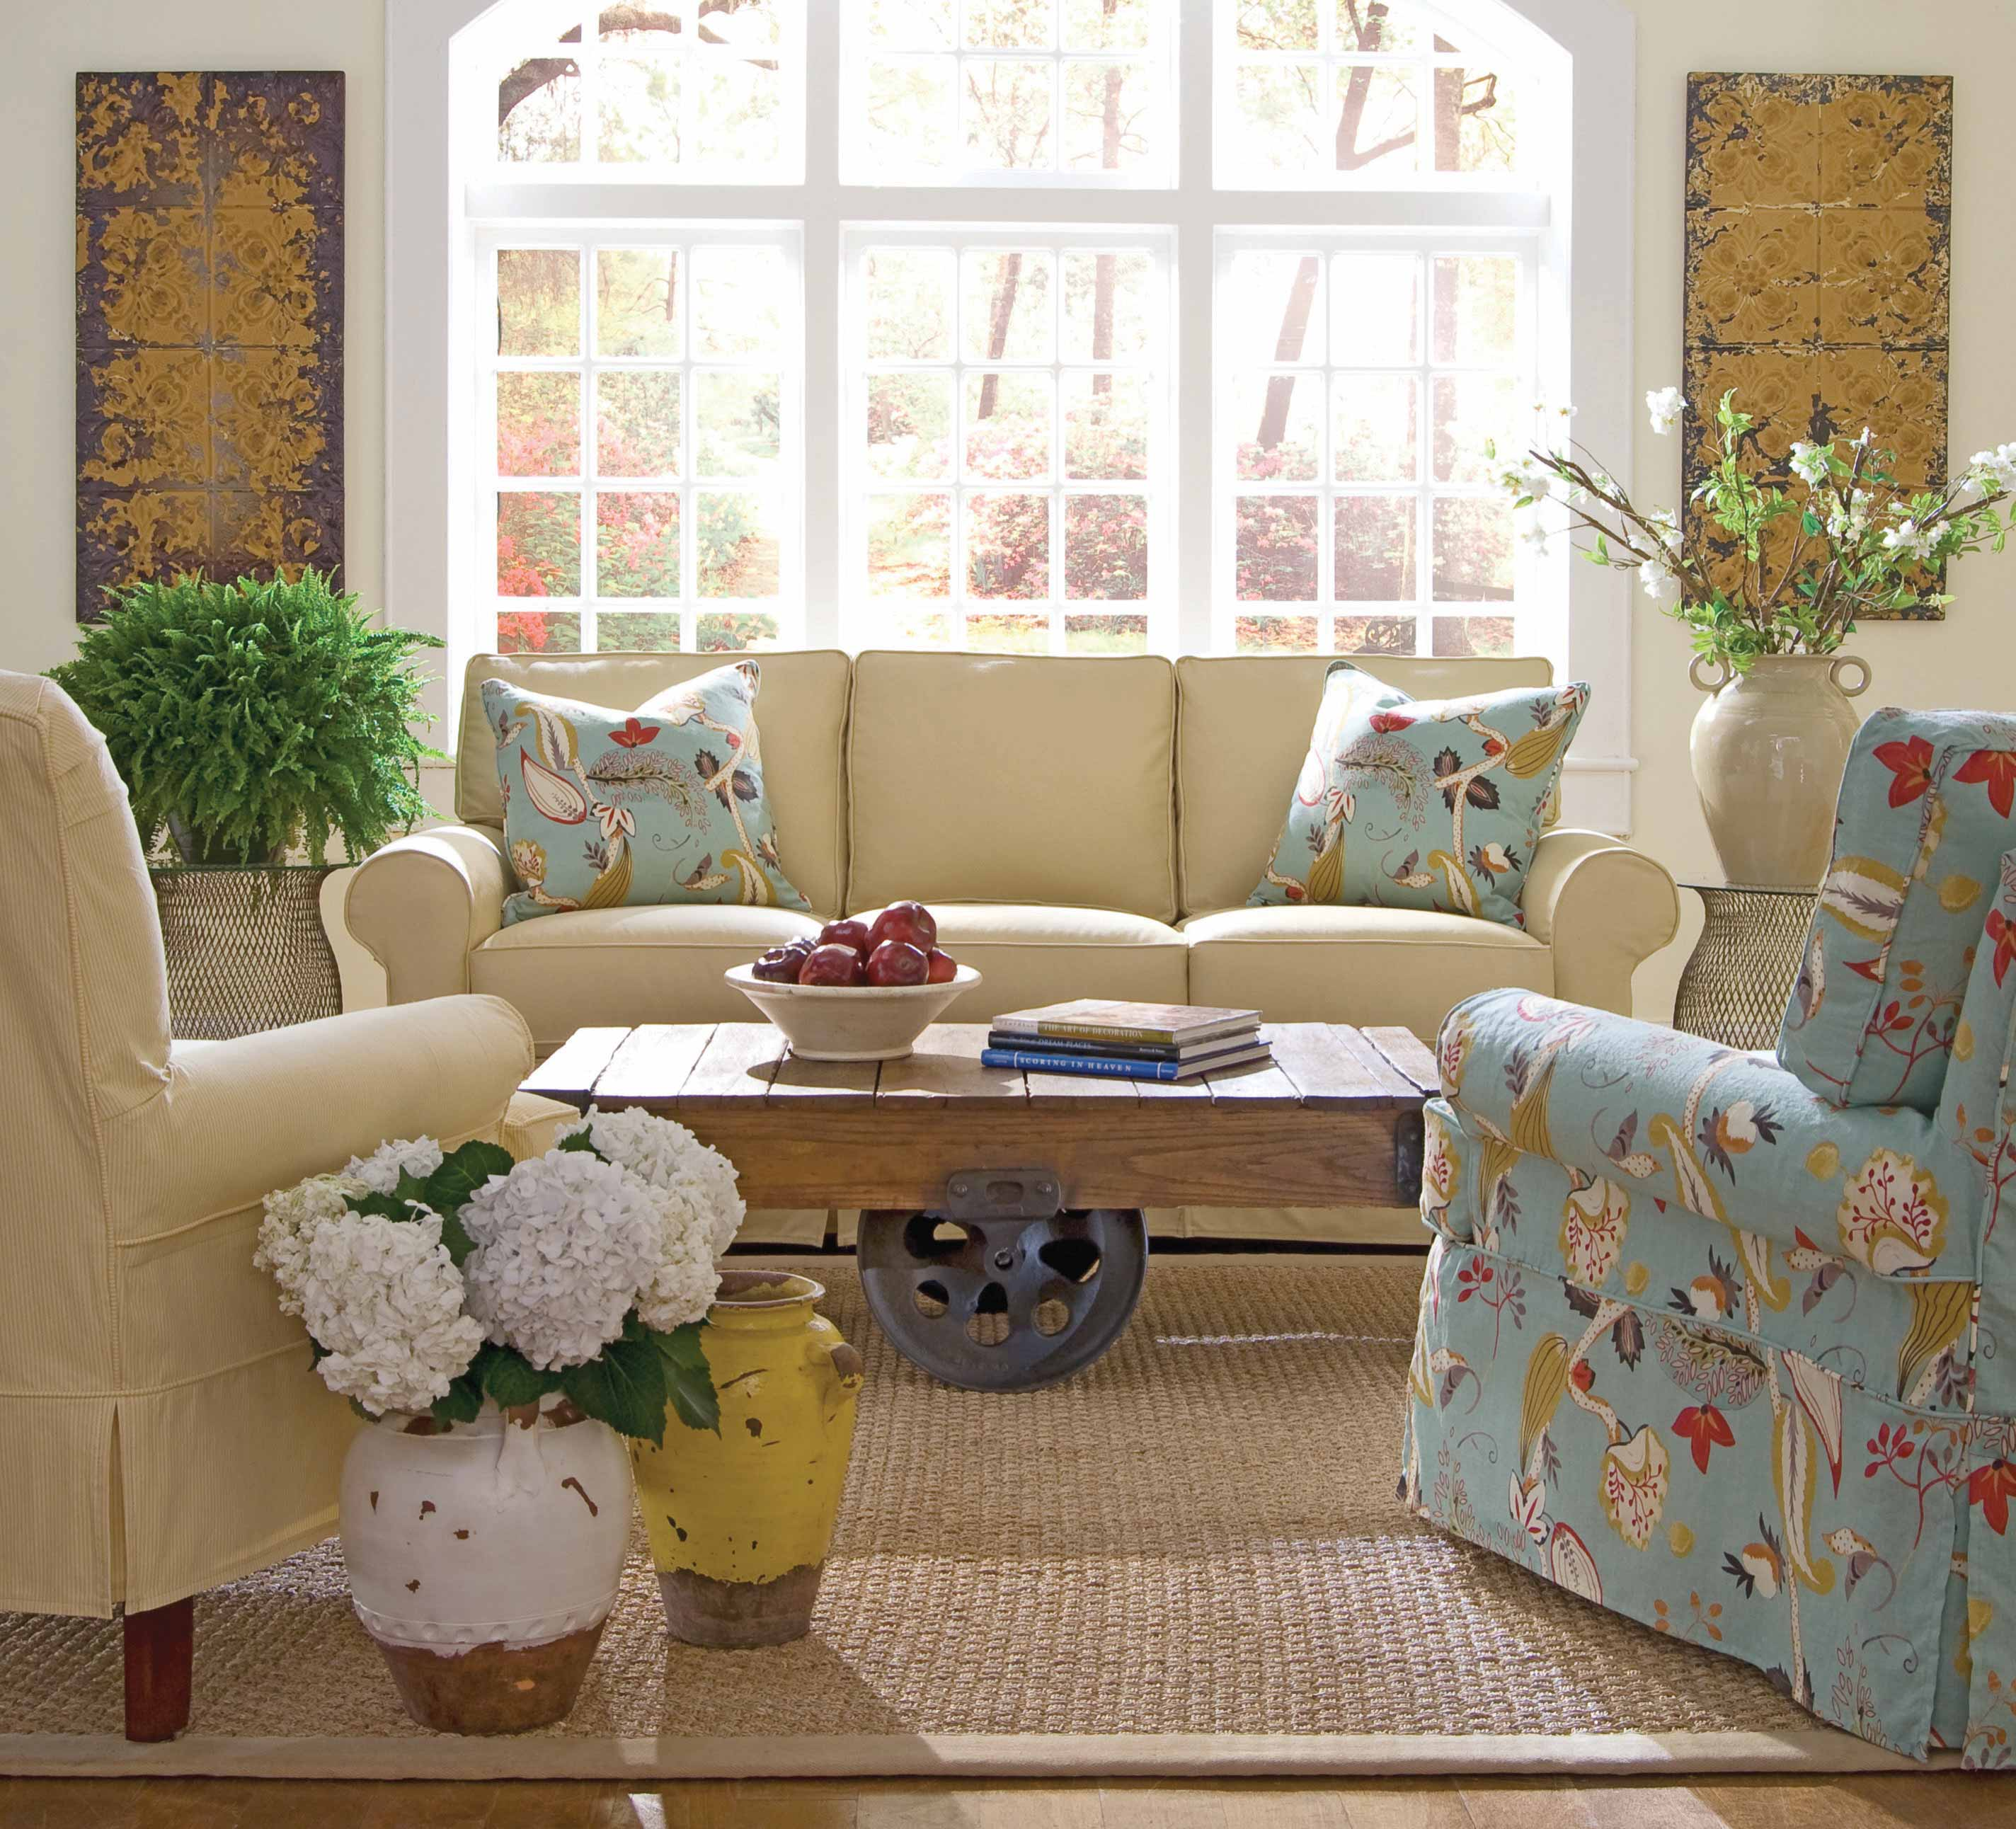 living room furniture picture gallery modern interior design white view our and award winning designs kendall home